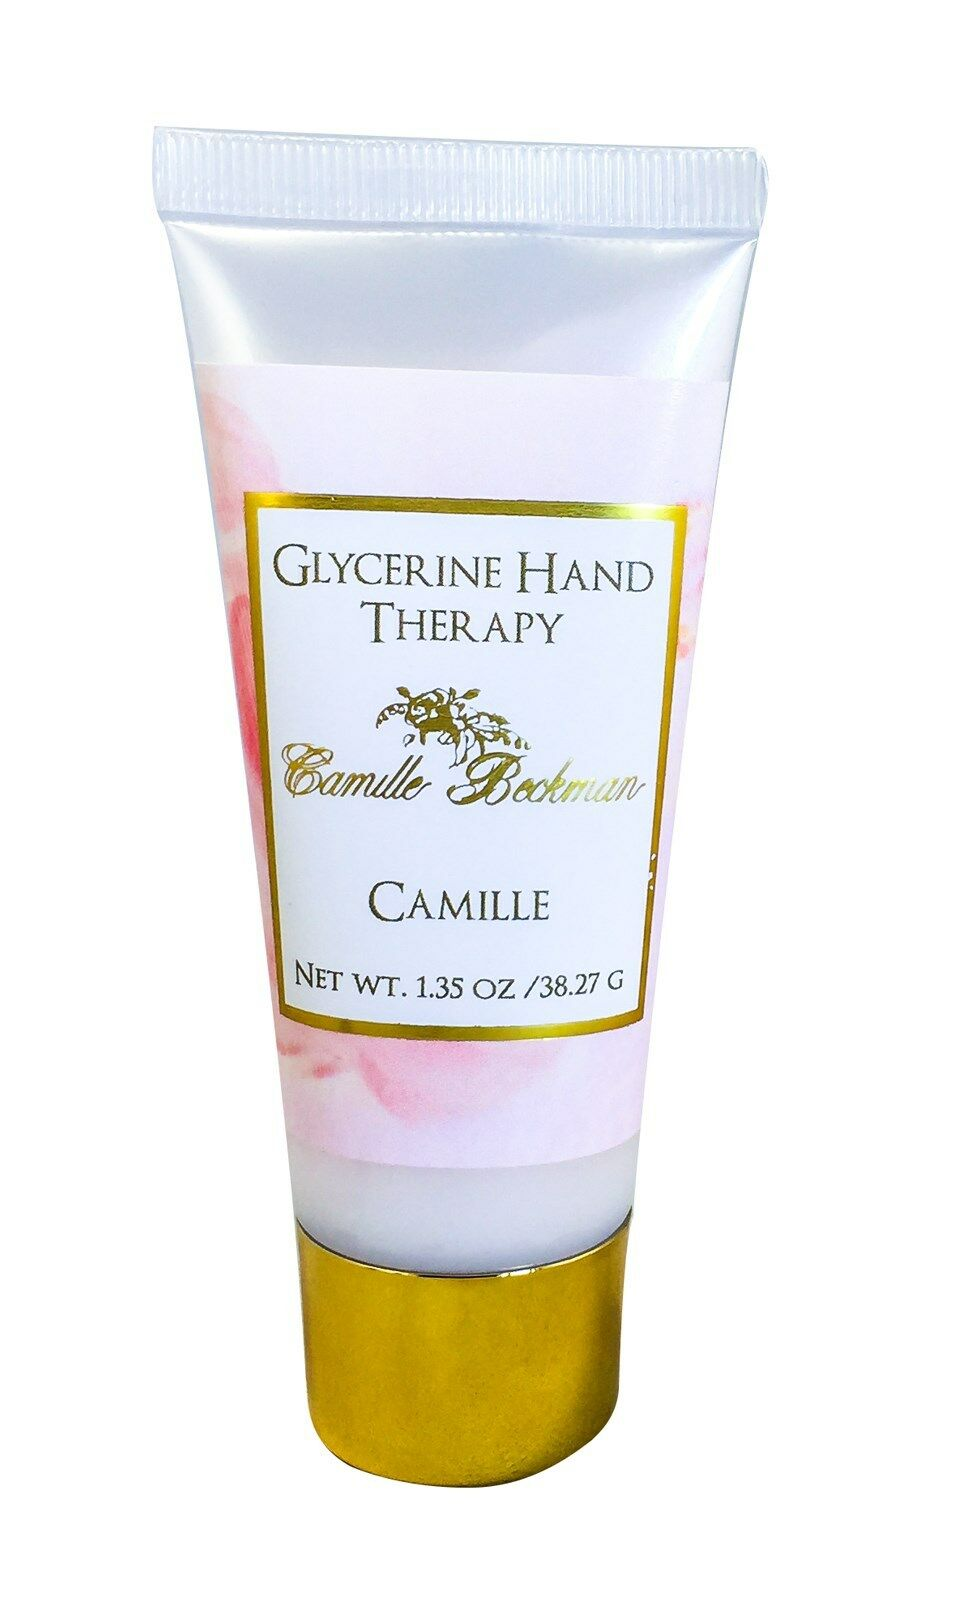 Camille Beckman Glycerine Hand Therapy, Camille